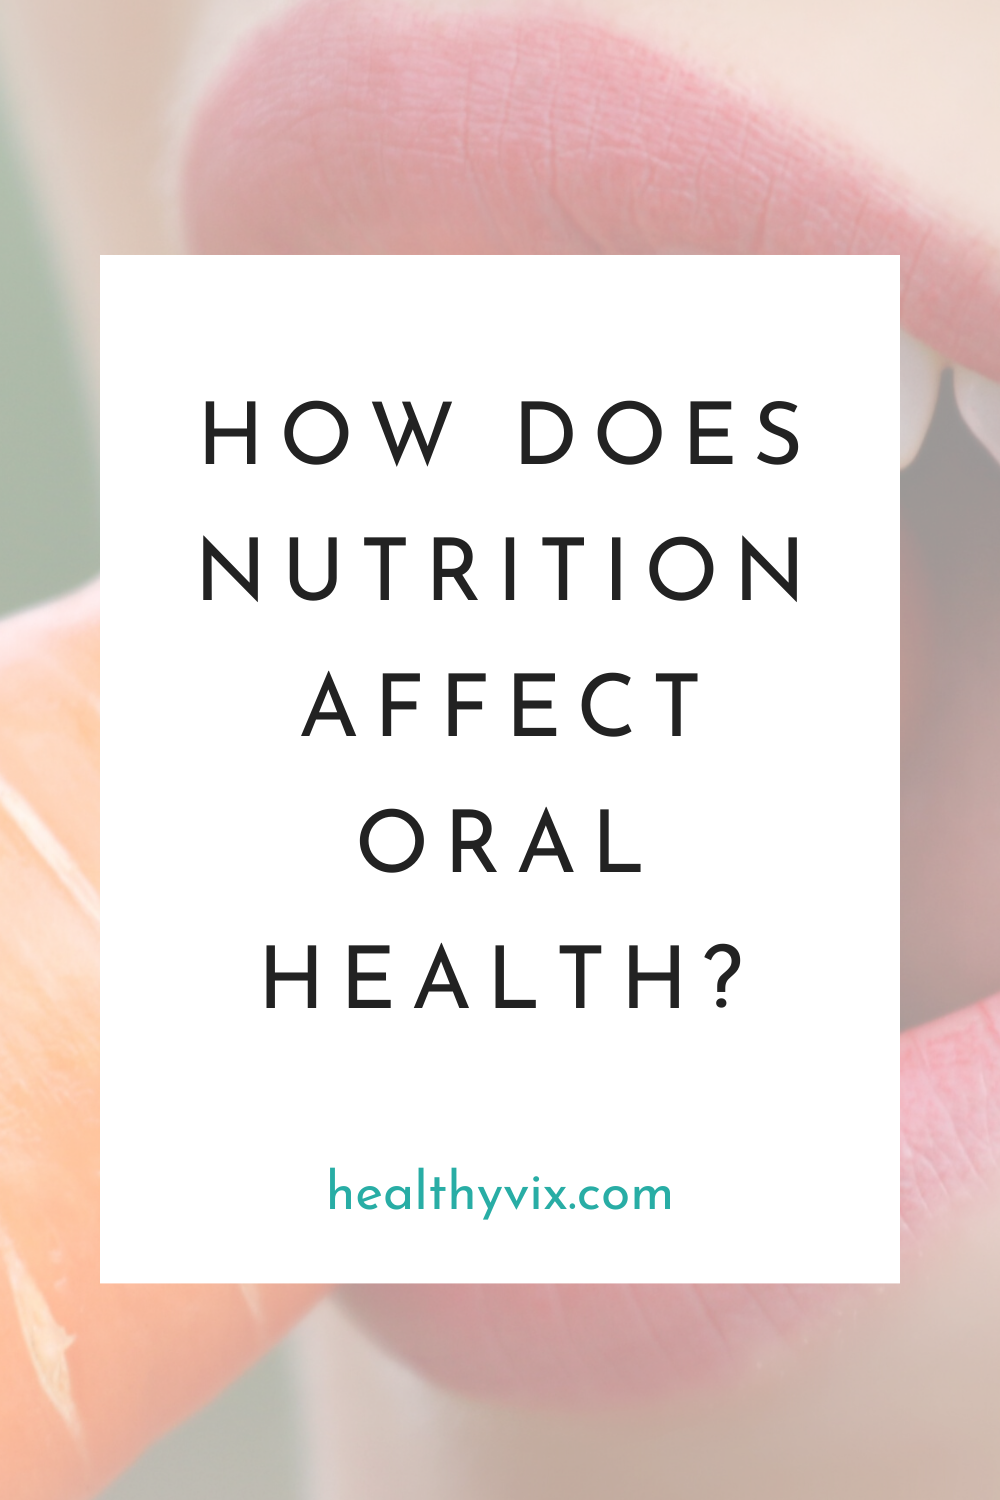 How does nutrition affect oral health?